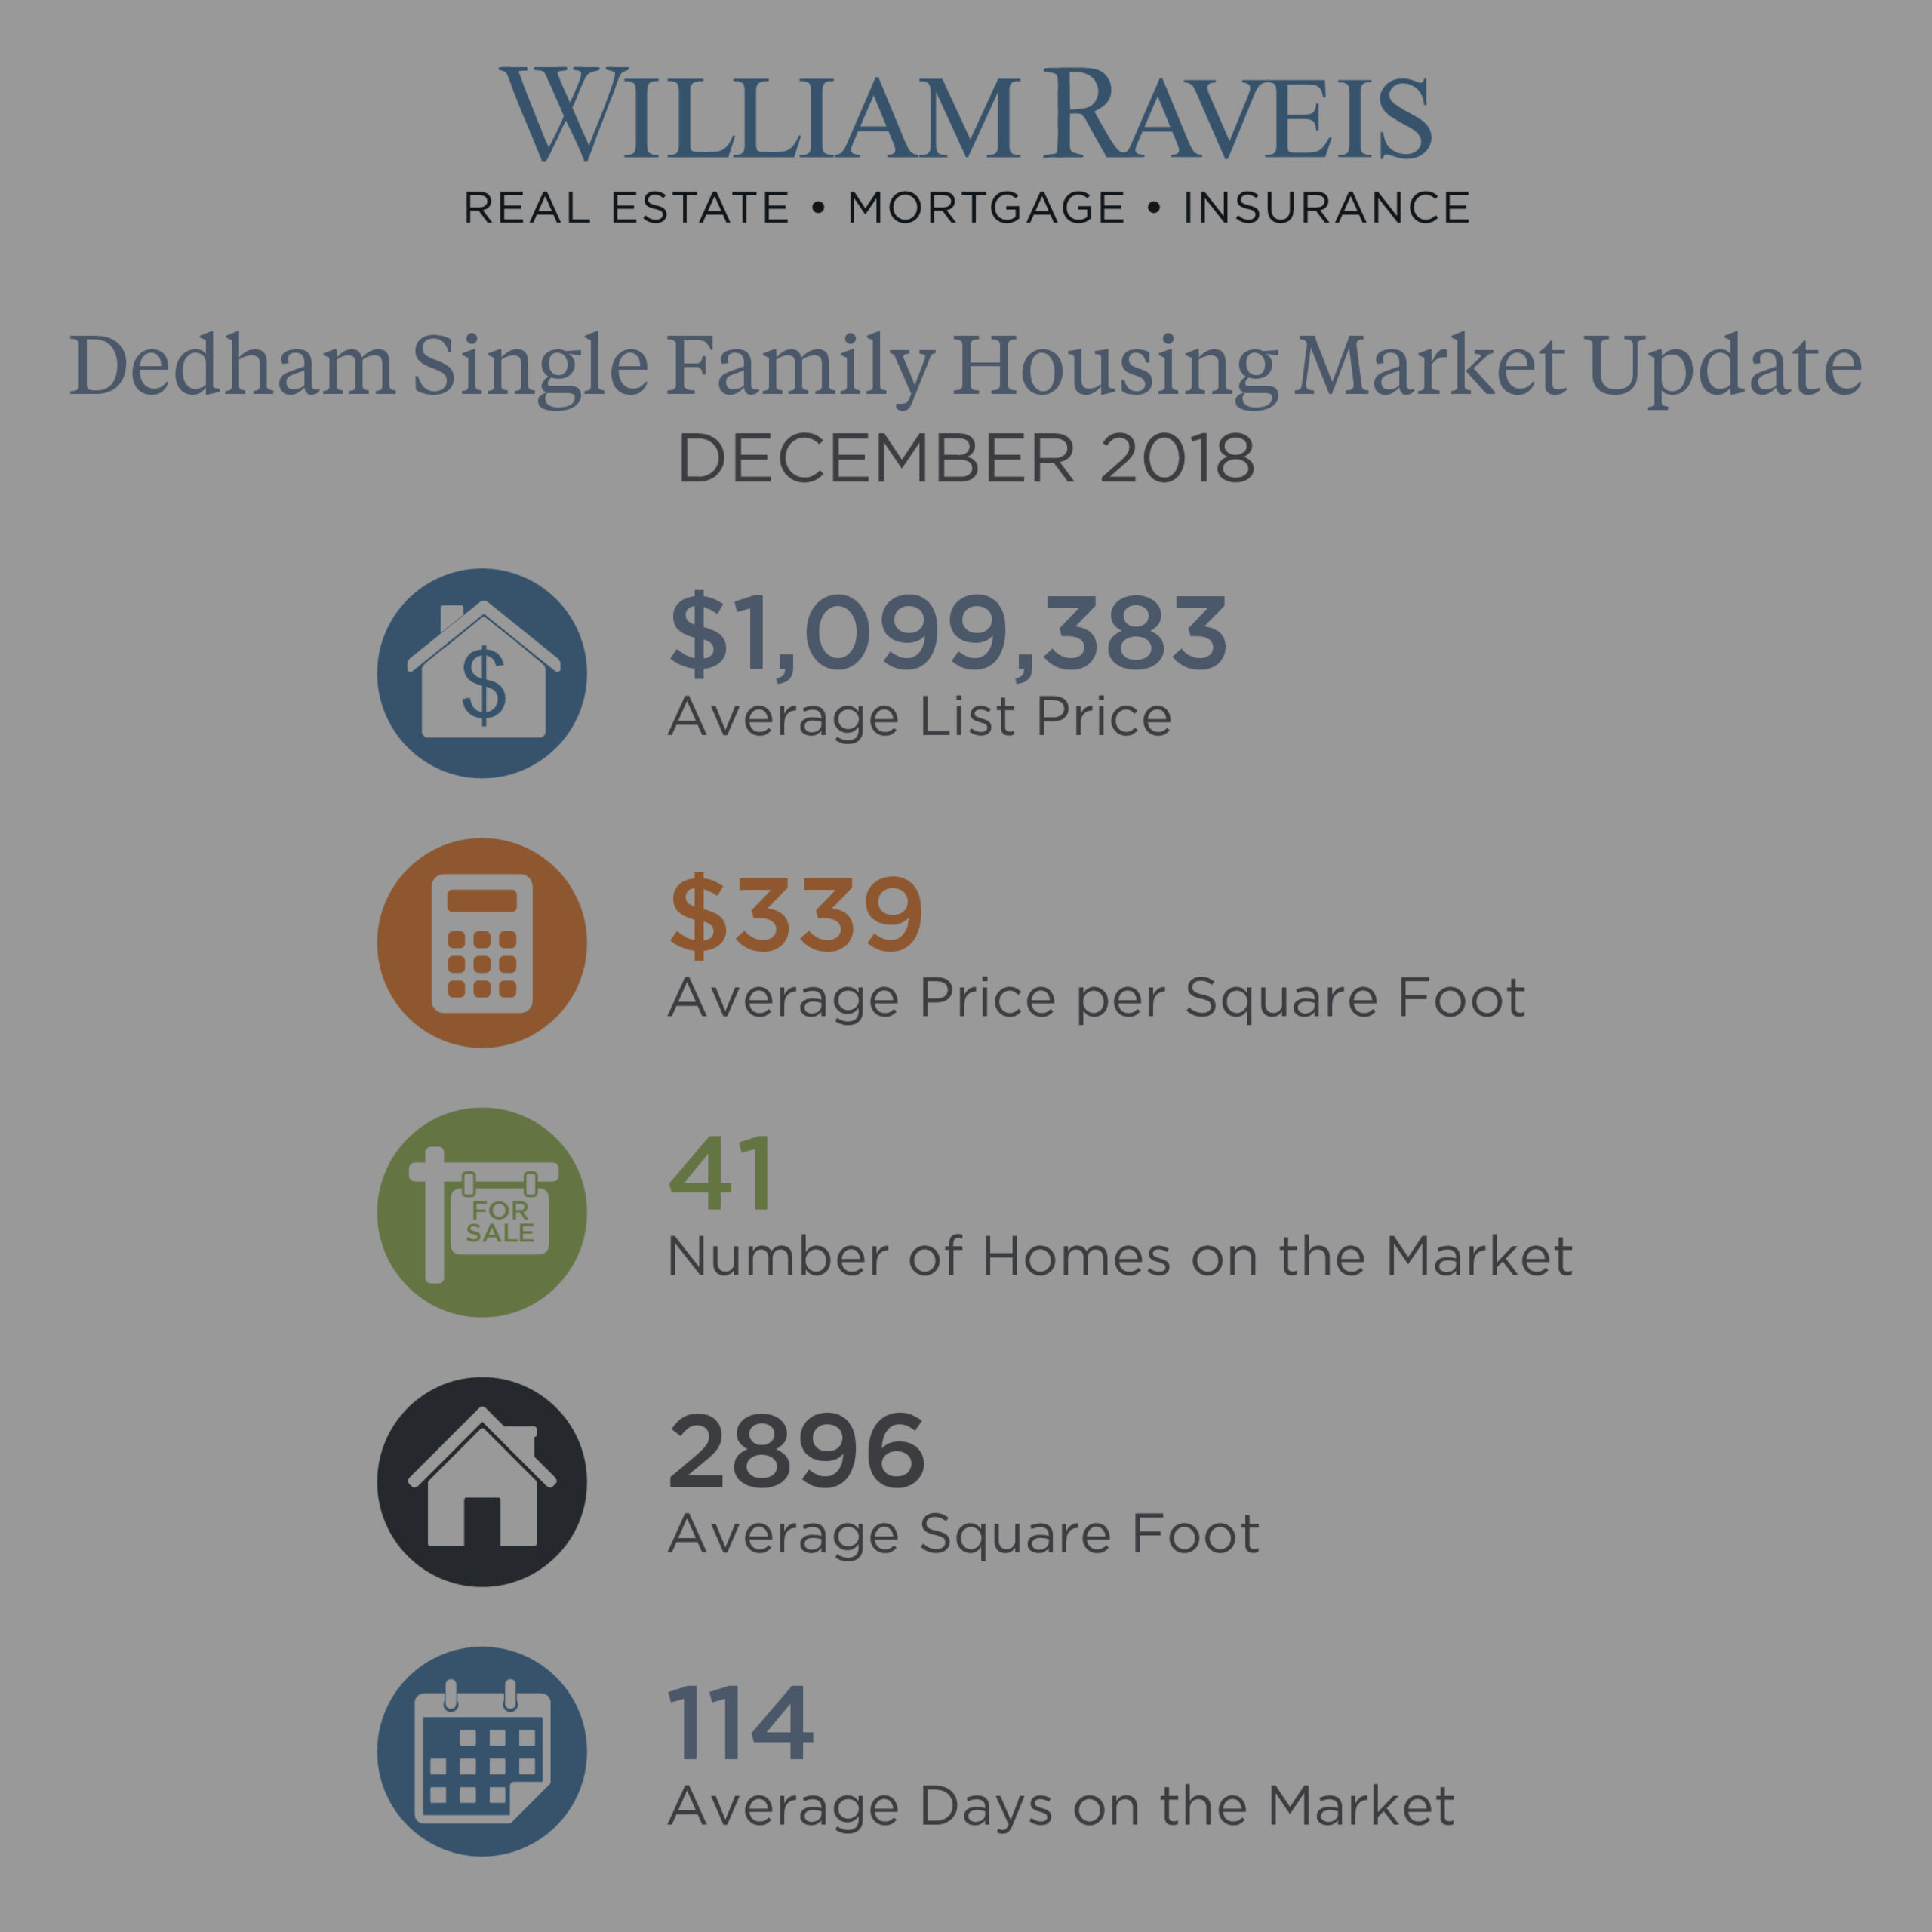 Dedham Housing Market Update December 2018